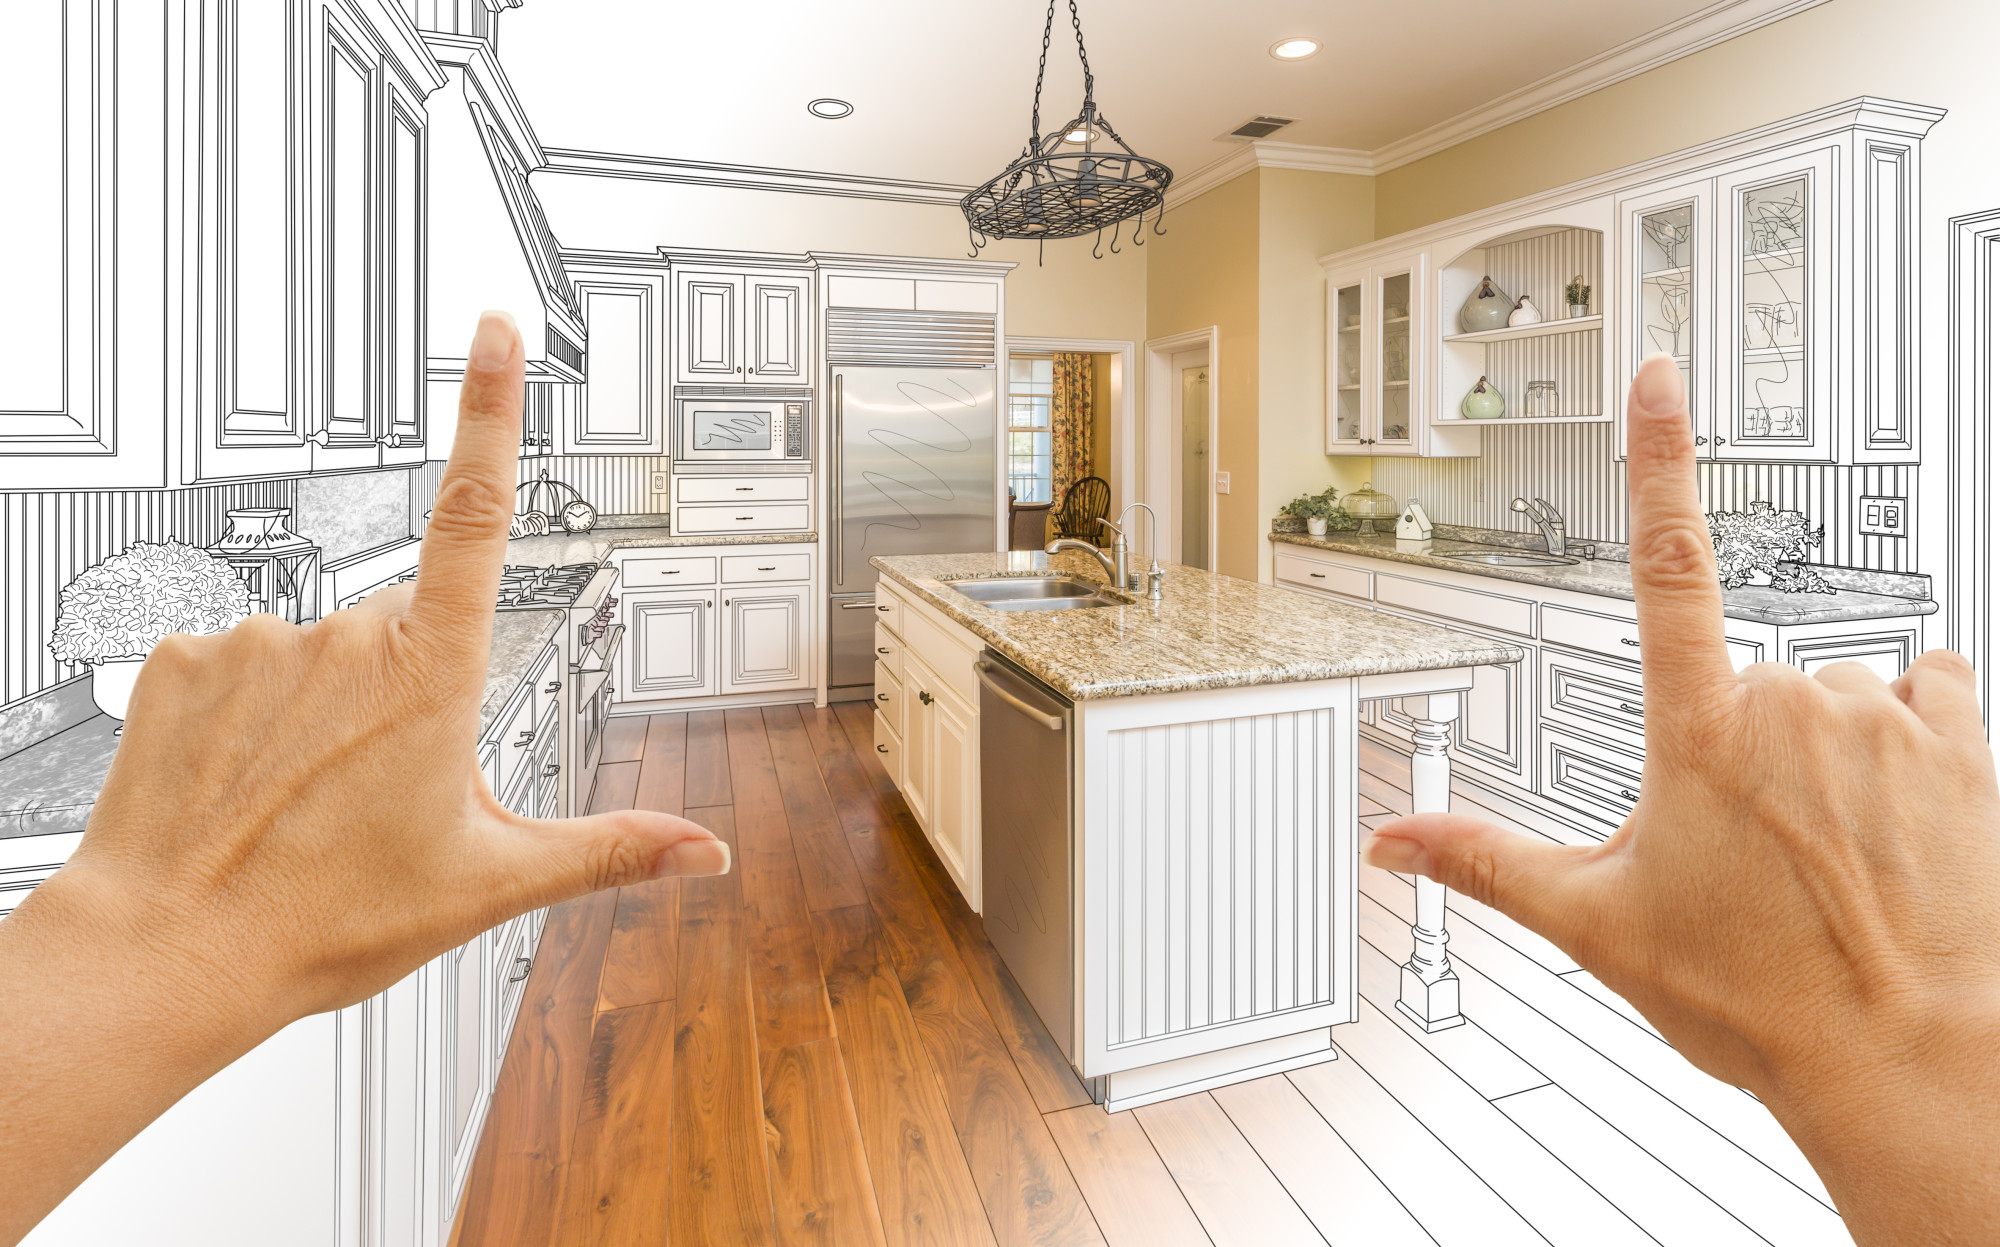 What Are the Benefits of Getting a Modern Home Renovation?